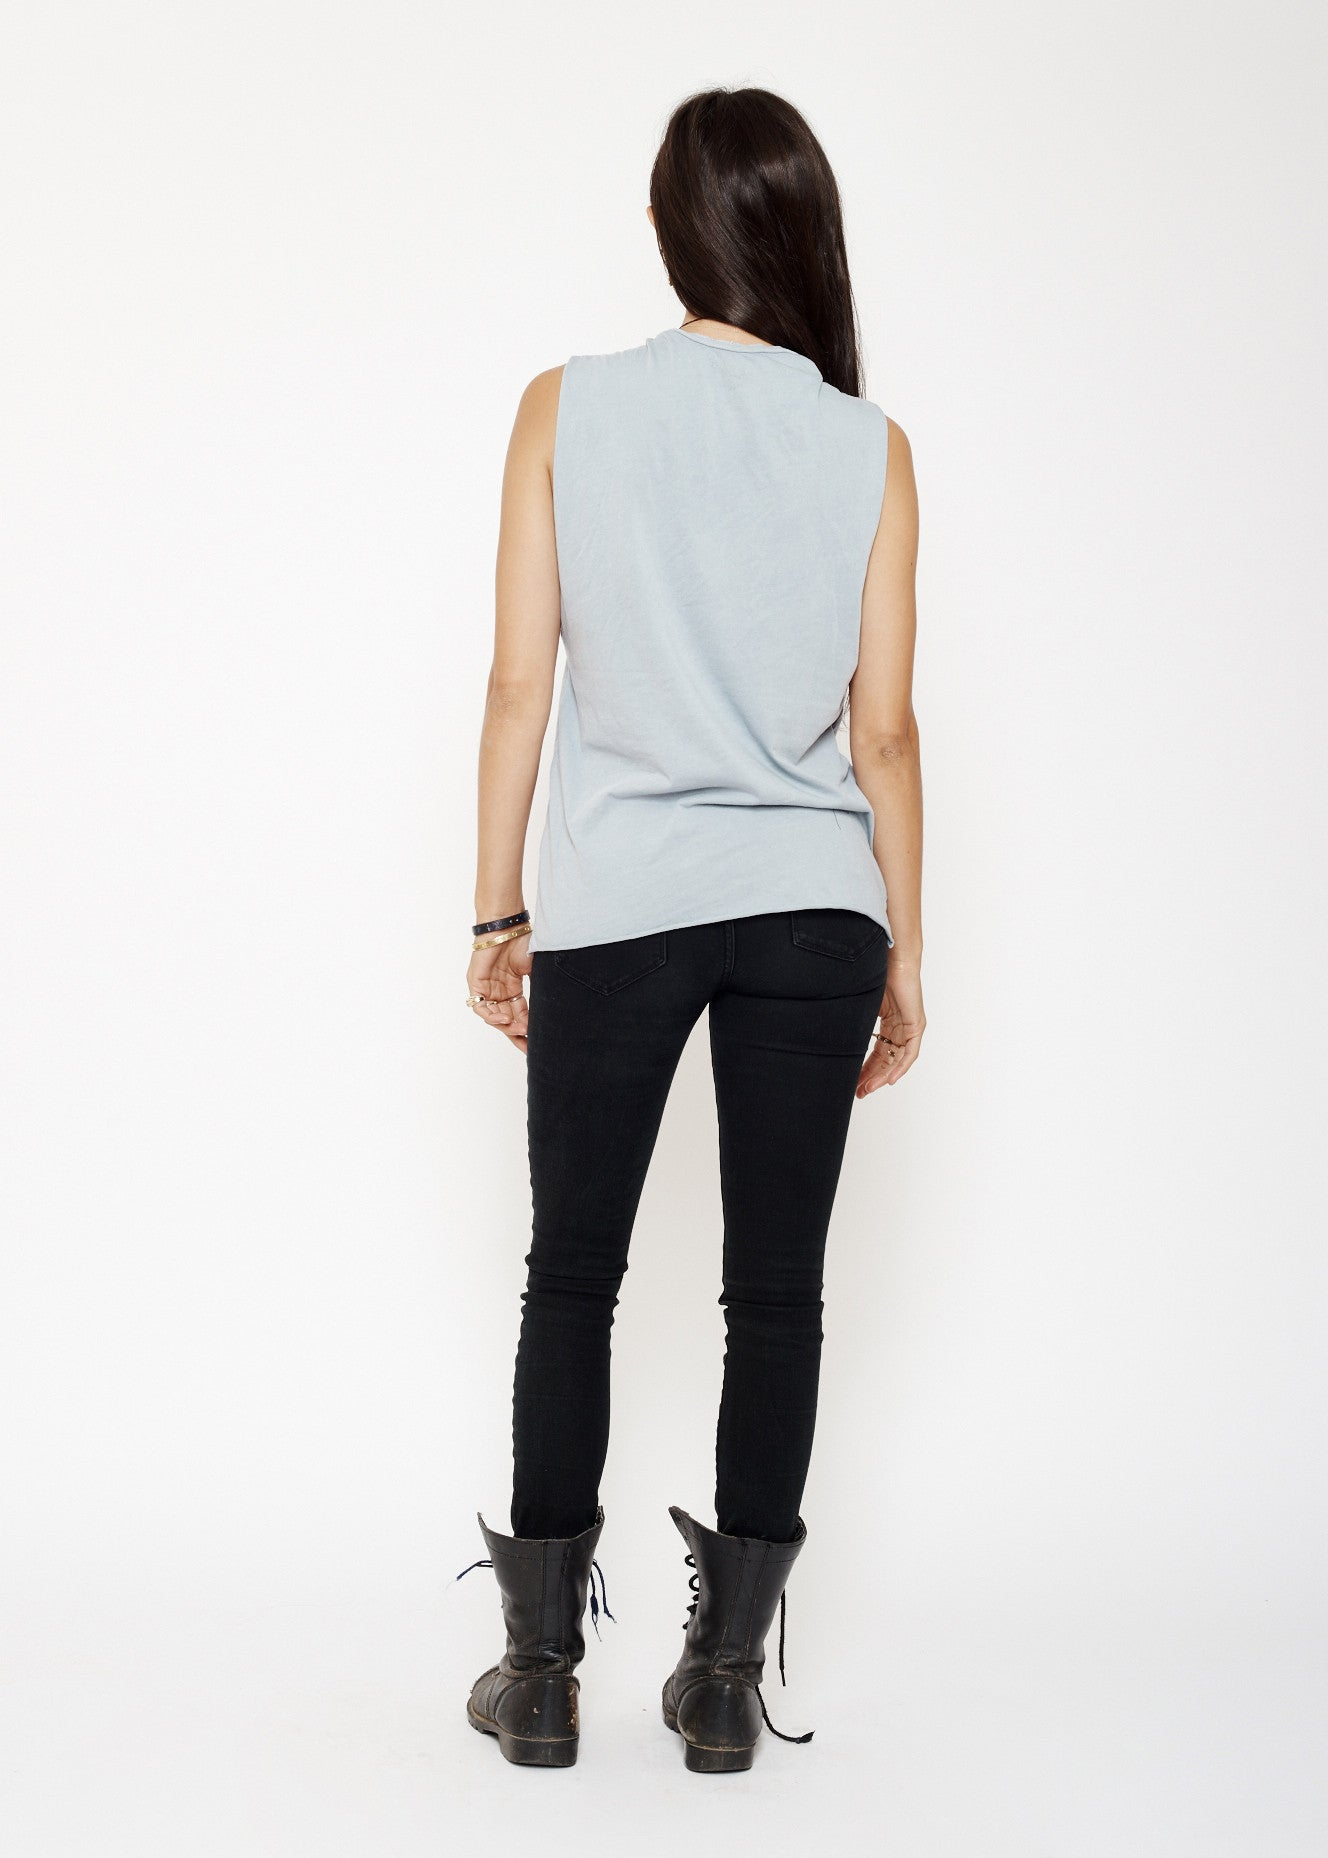 Big Sur Muscle Tee - Sky Blue Stone Wash - Women's Muscle Tee - Midnight Rider